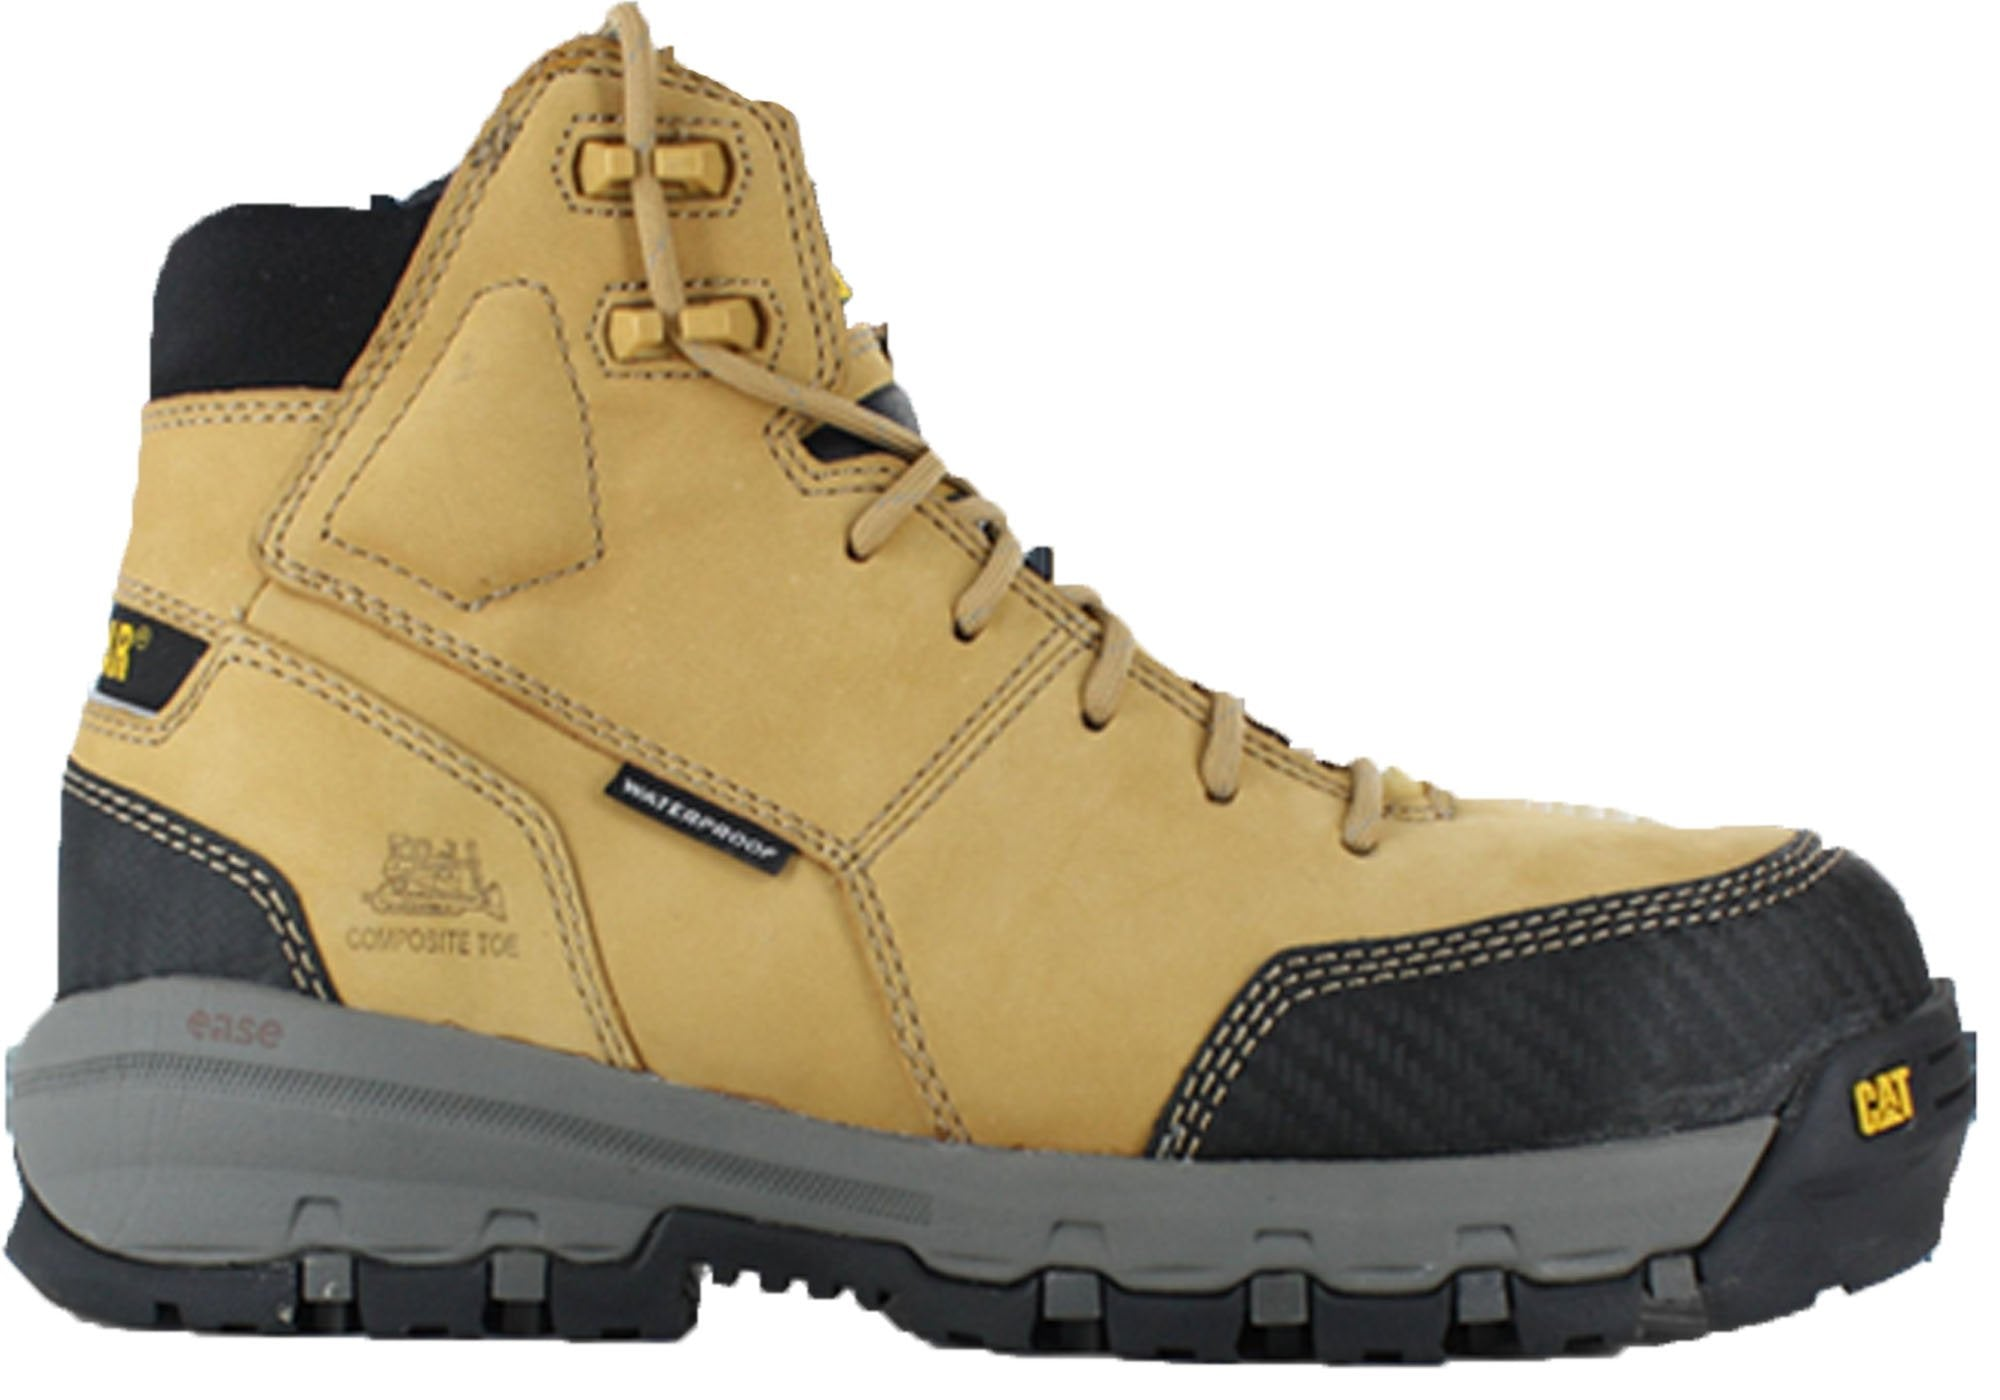 3422f86469979 Caterpillar Mens Work Boots, Caterpillar Safety Boots - Mode Footwear